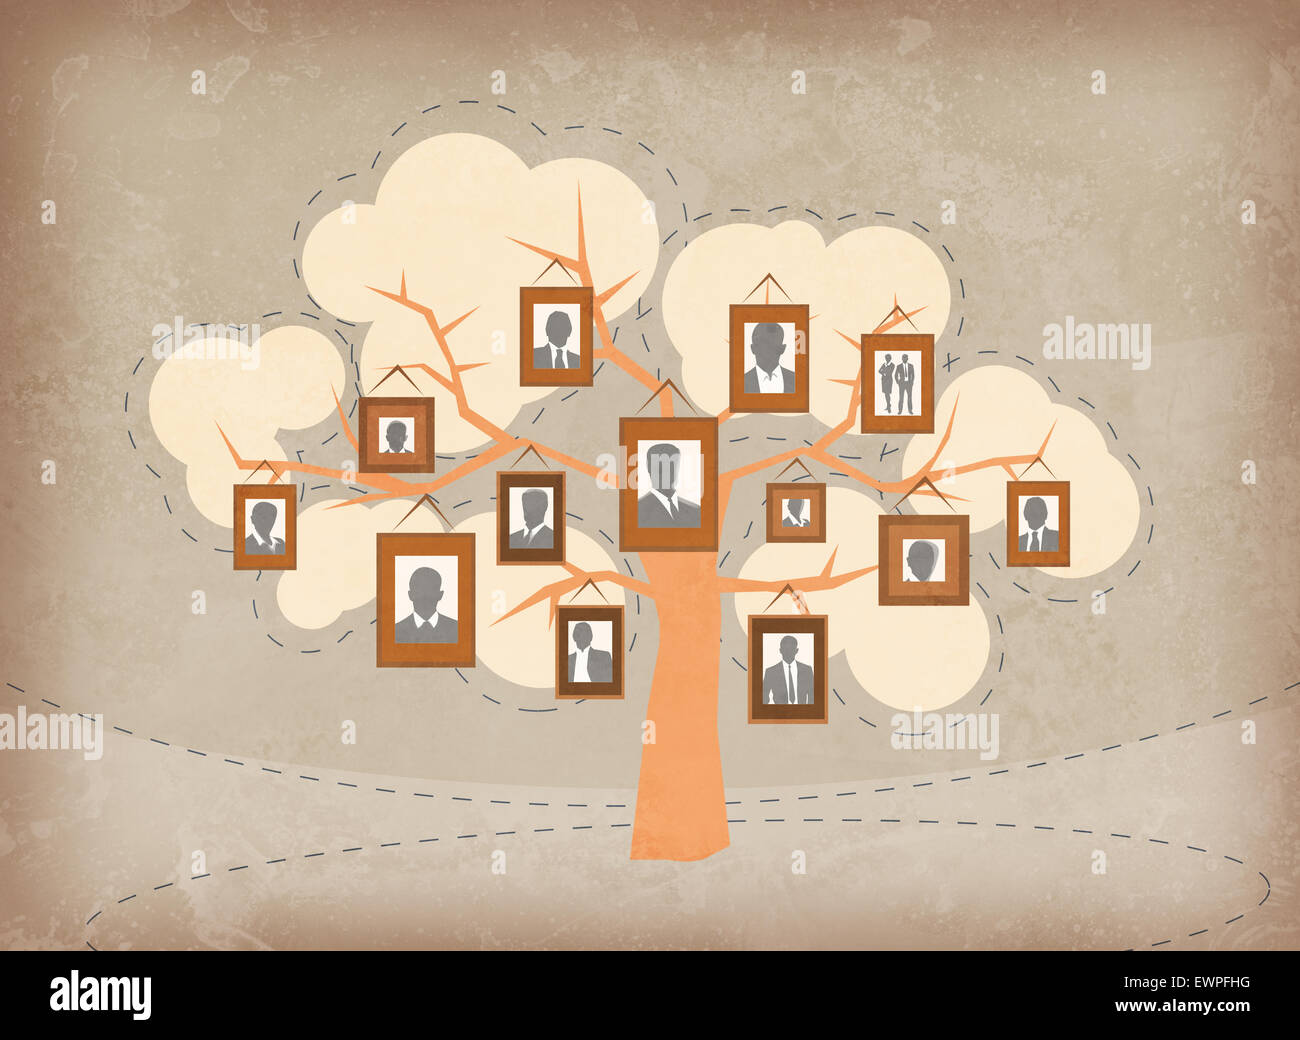 Illustrative image of business people attached to tree branches representing growth and teamwork - Stock Image